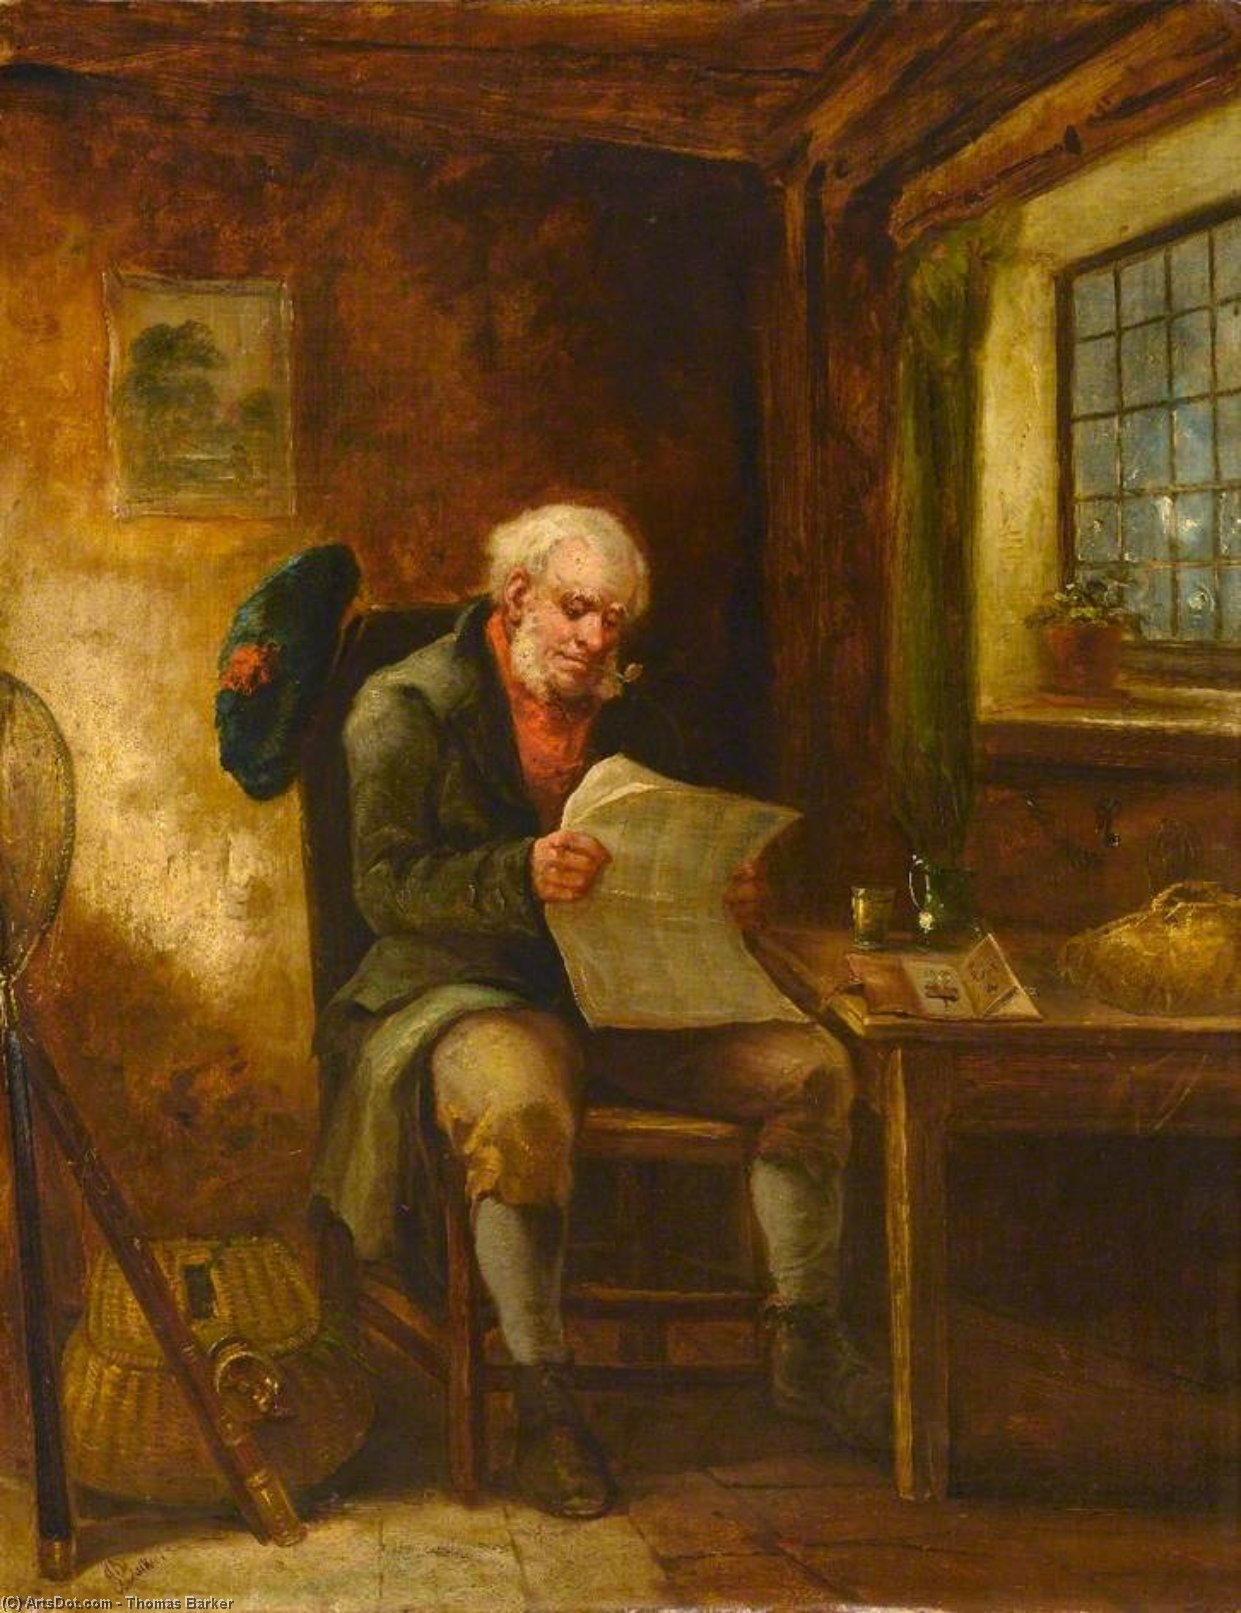 Scotsman In A Cottage Interior by Thomas Barker (1769-1847, United Kingdom)